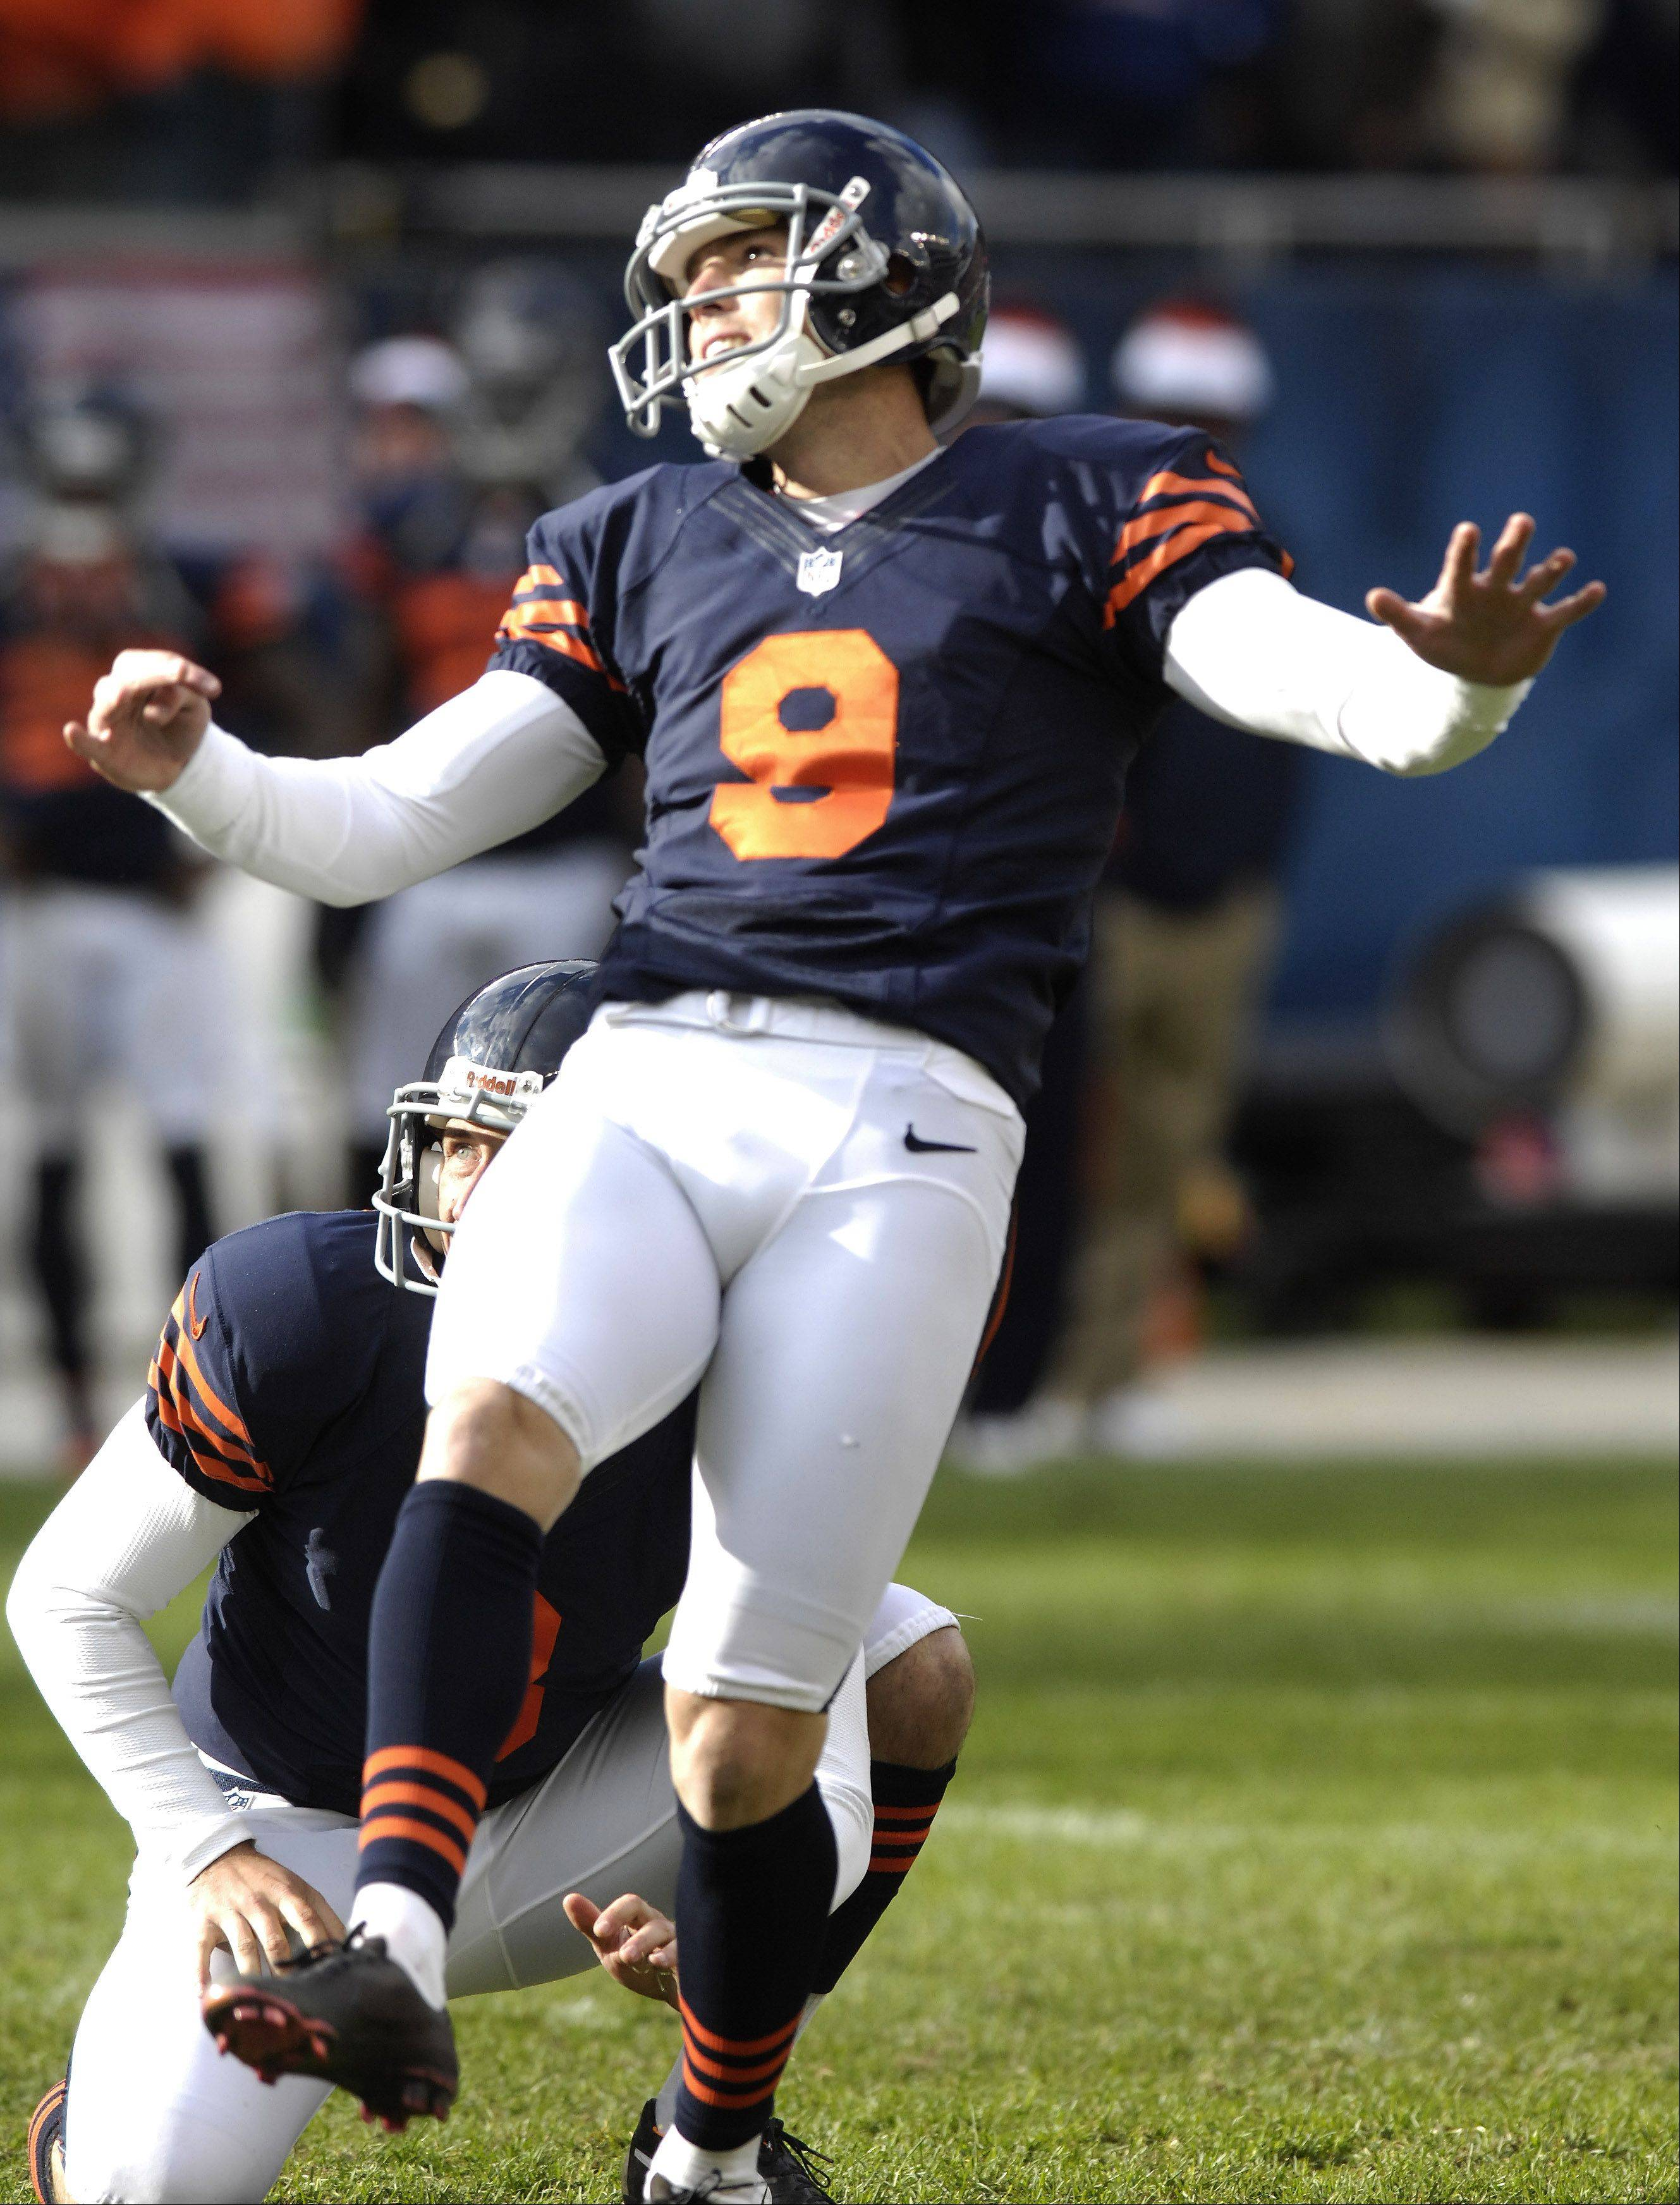 Chicago Bears kicker Robbie Gould kicks the game-winning field goal during Sunday's game at Soldier Field.